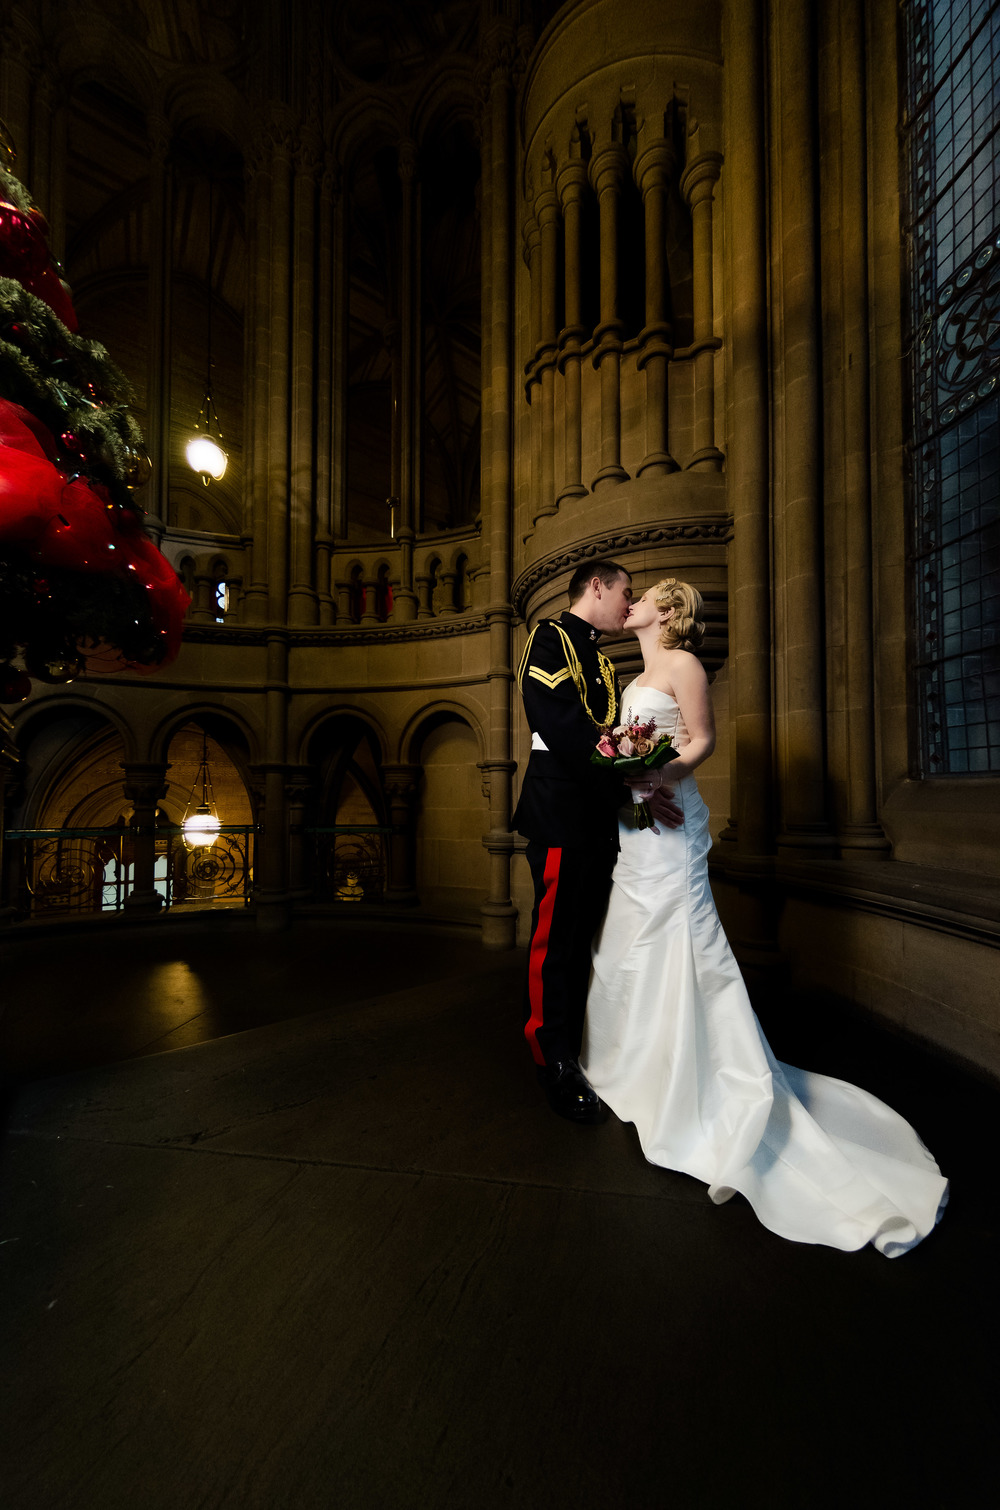 When Dan & Zoe married in Manchester's Town Hall the architecture made the most fantastic backdrop that simply had to be captured.